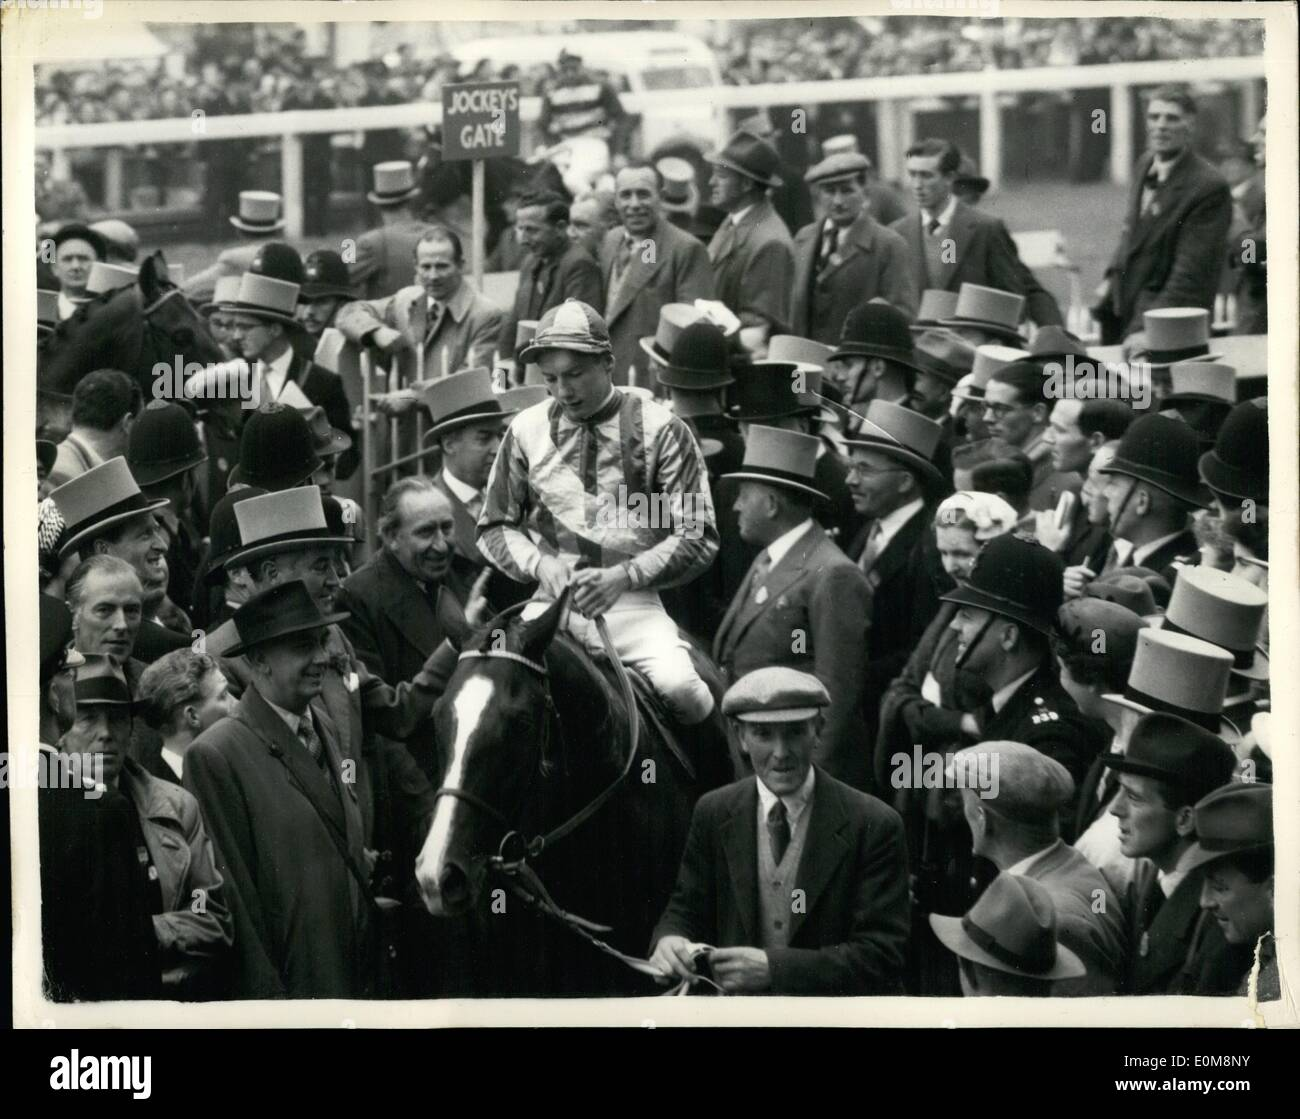 Feb. 02, 1954 - Derby - At Epsom. ''Never- Say Die'' Wins.. Picture Shows: General view showing the winner ''Never Say Die'' - entering the unsaddling enclosure - after winning the Derby at Epsom this afternoon. Lester Piggott is the Jockey. - Stock Image